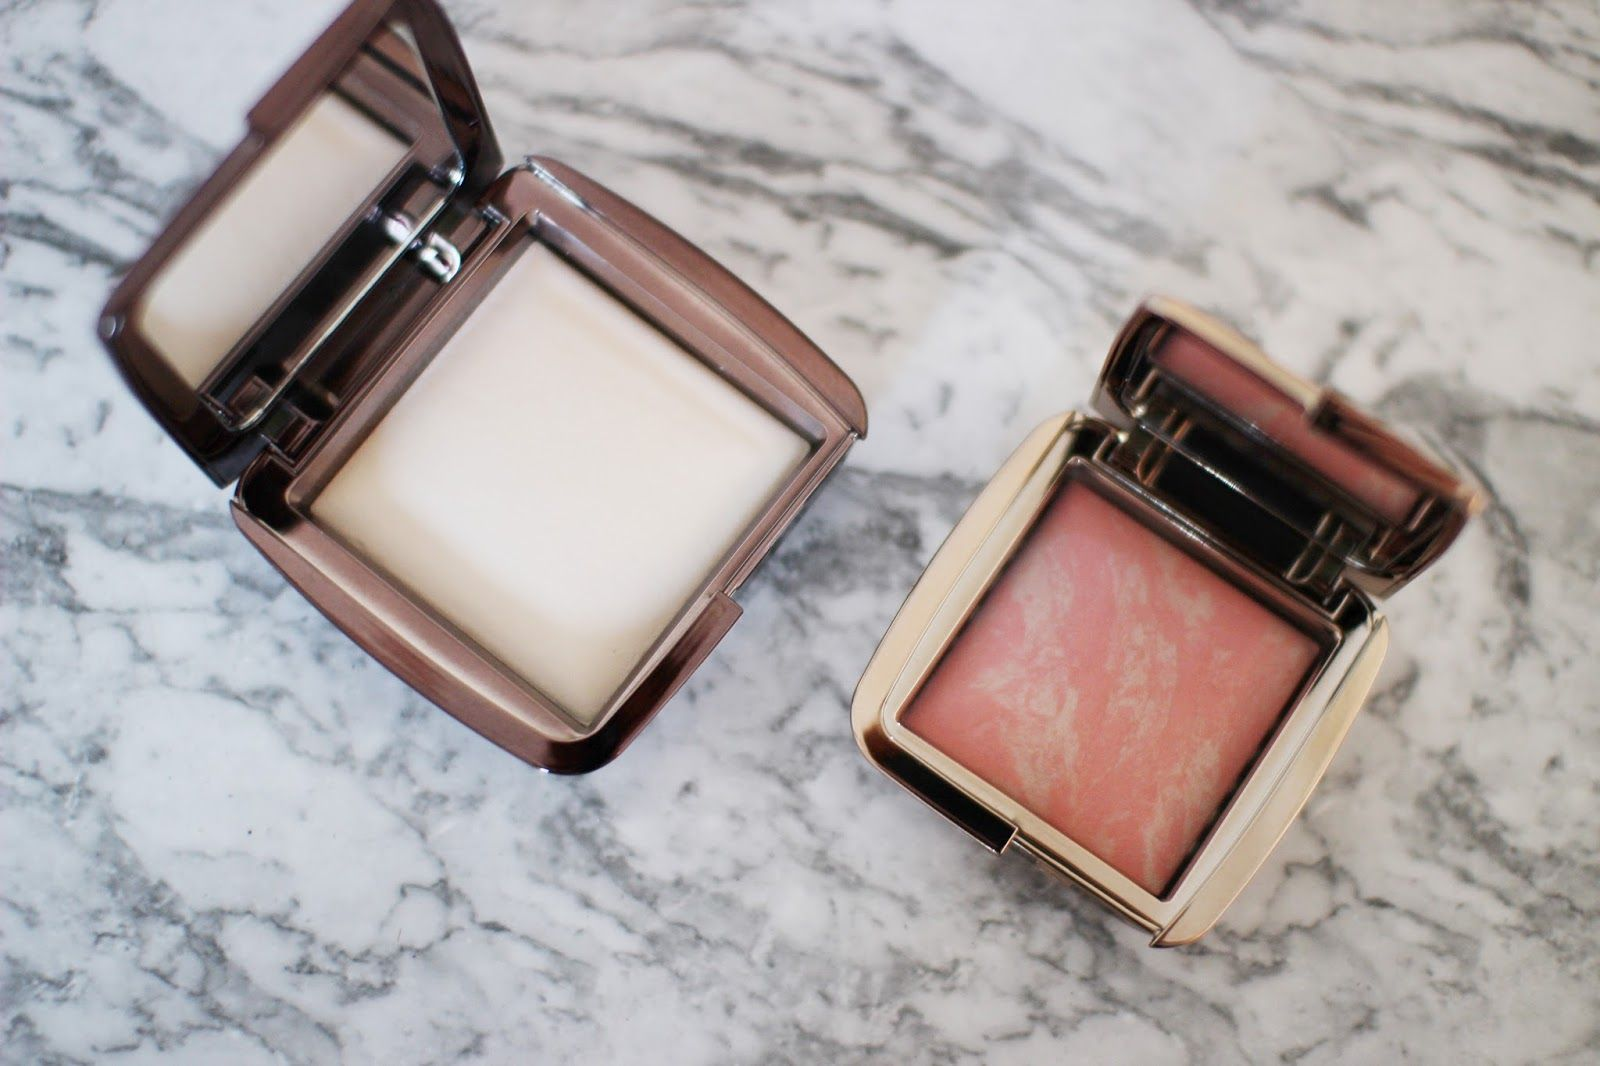 HOURGLASS LIGHTING POWDERS: ETHEREAL LIGHT U0026 DIM INFUSION   WORTH THE HYPE?